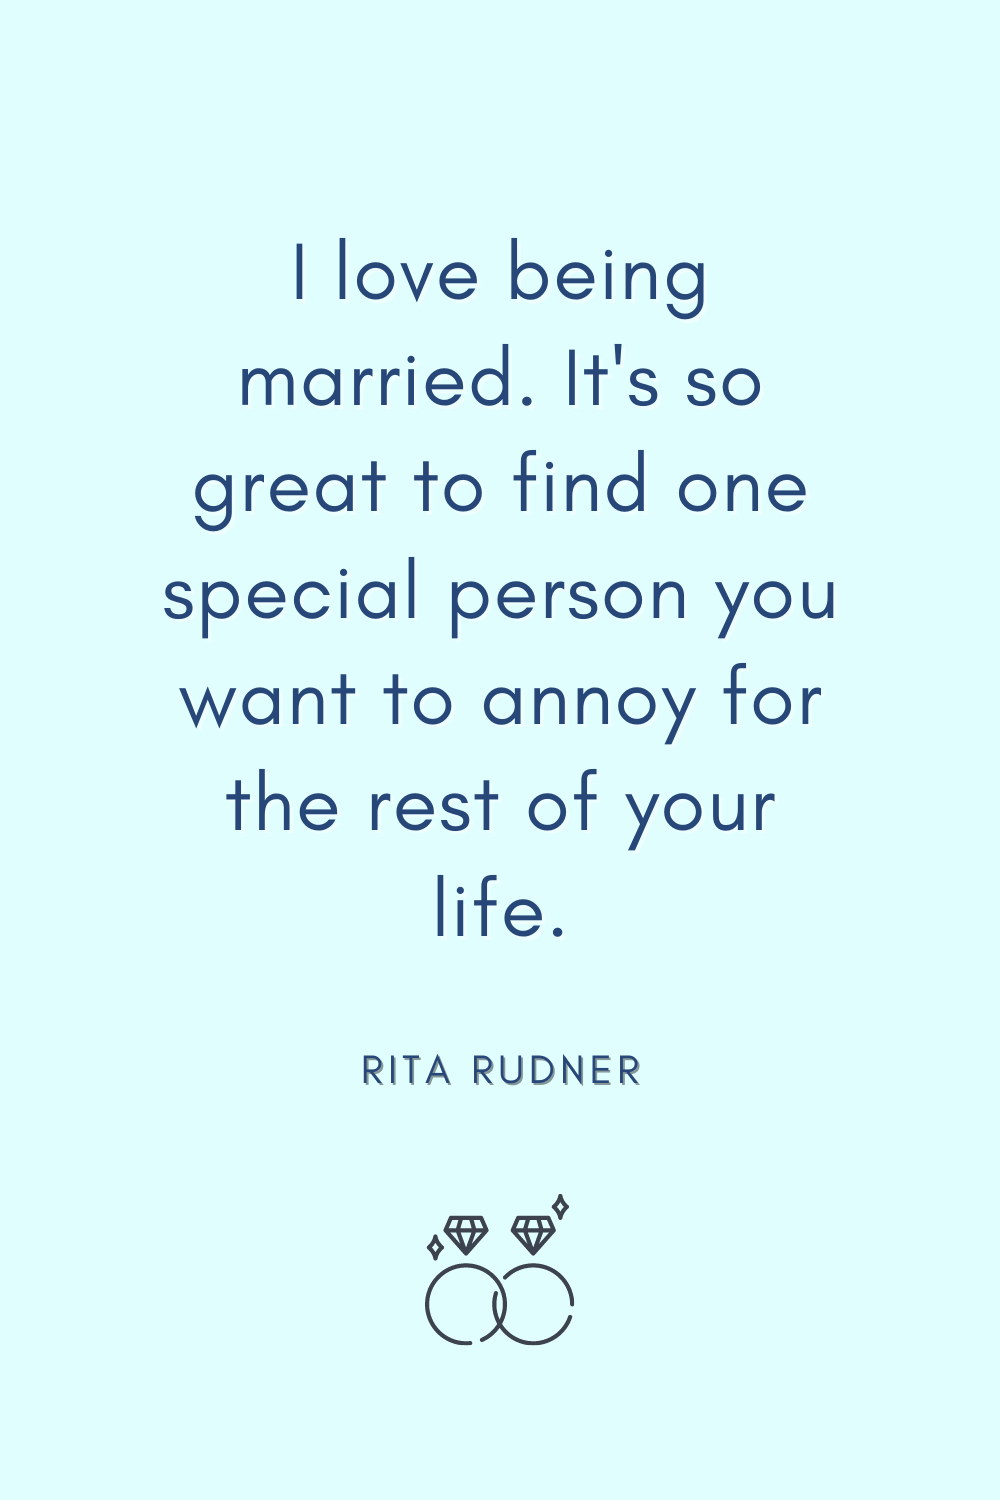 I love being married. It's so great to find one special person you want to annoy for the rest of your life. - Rita Rudner